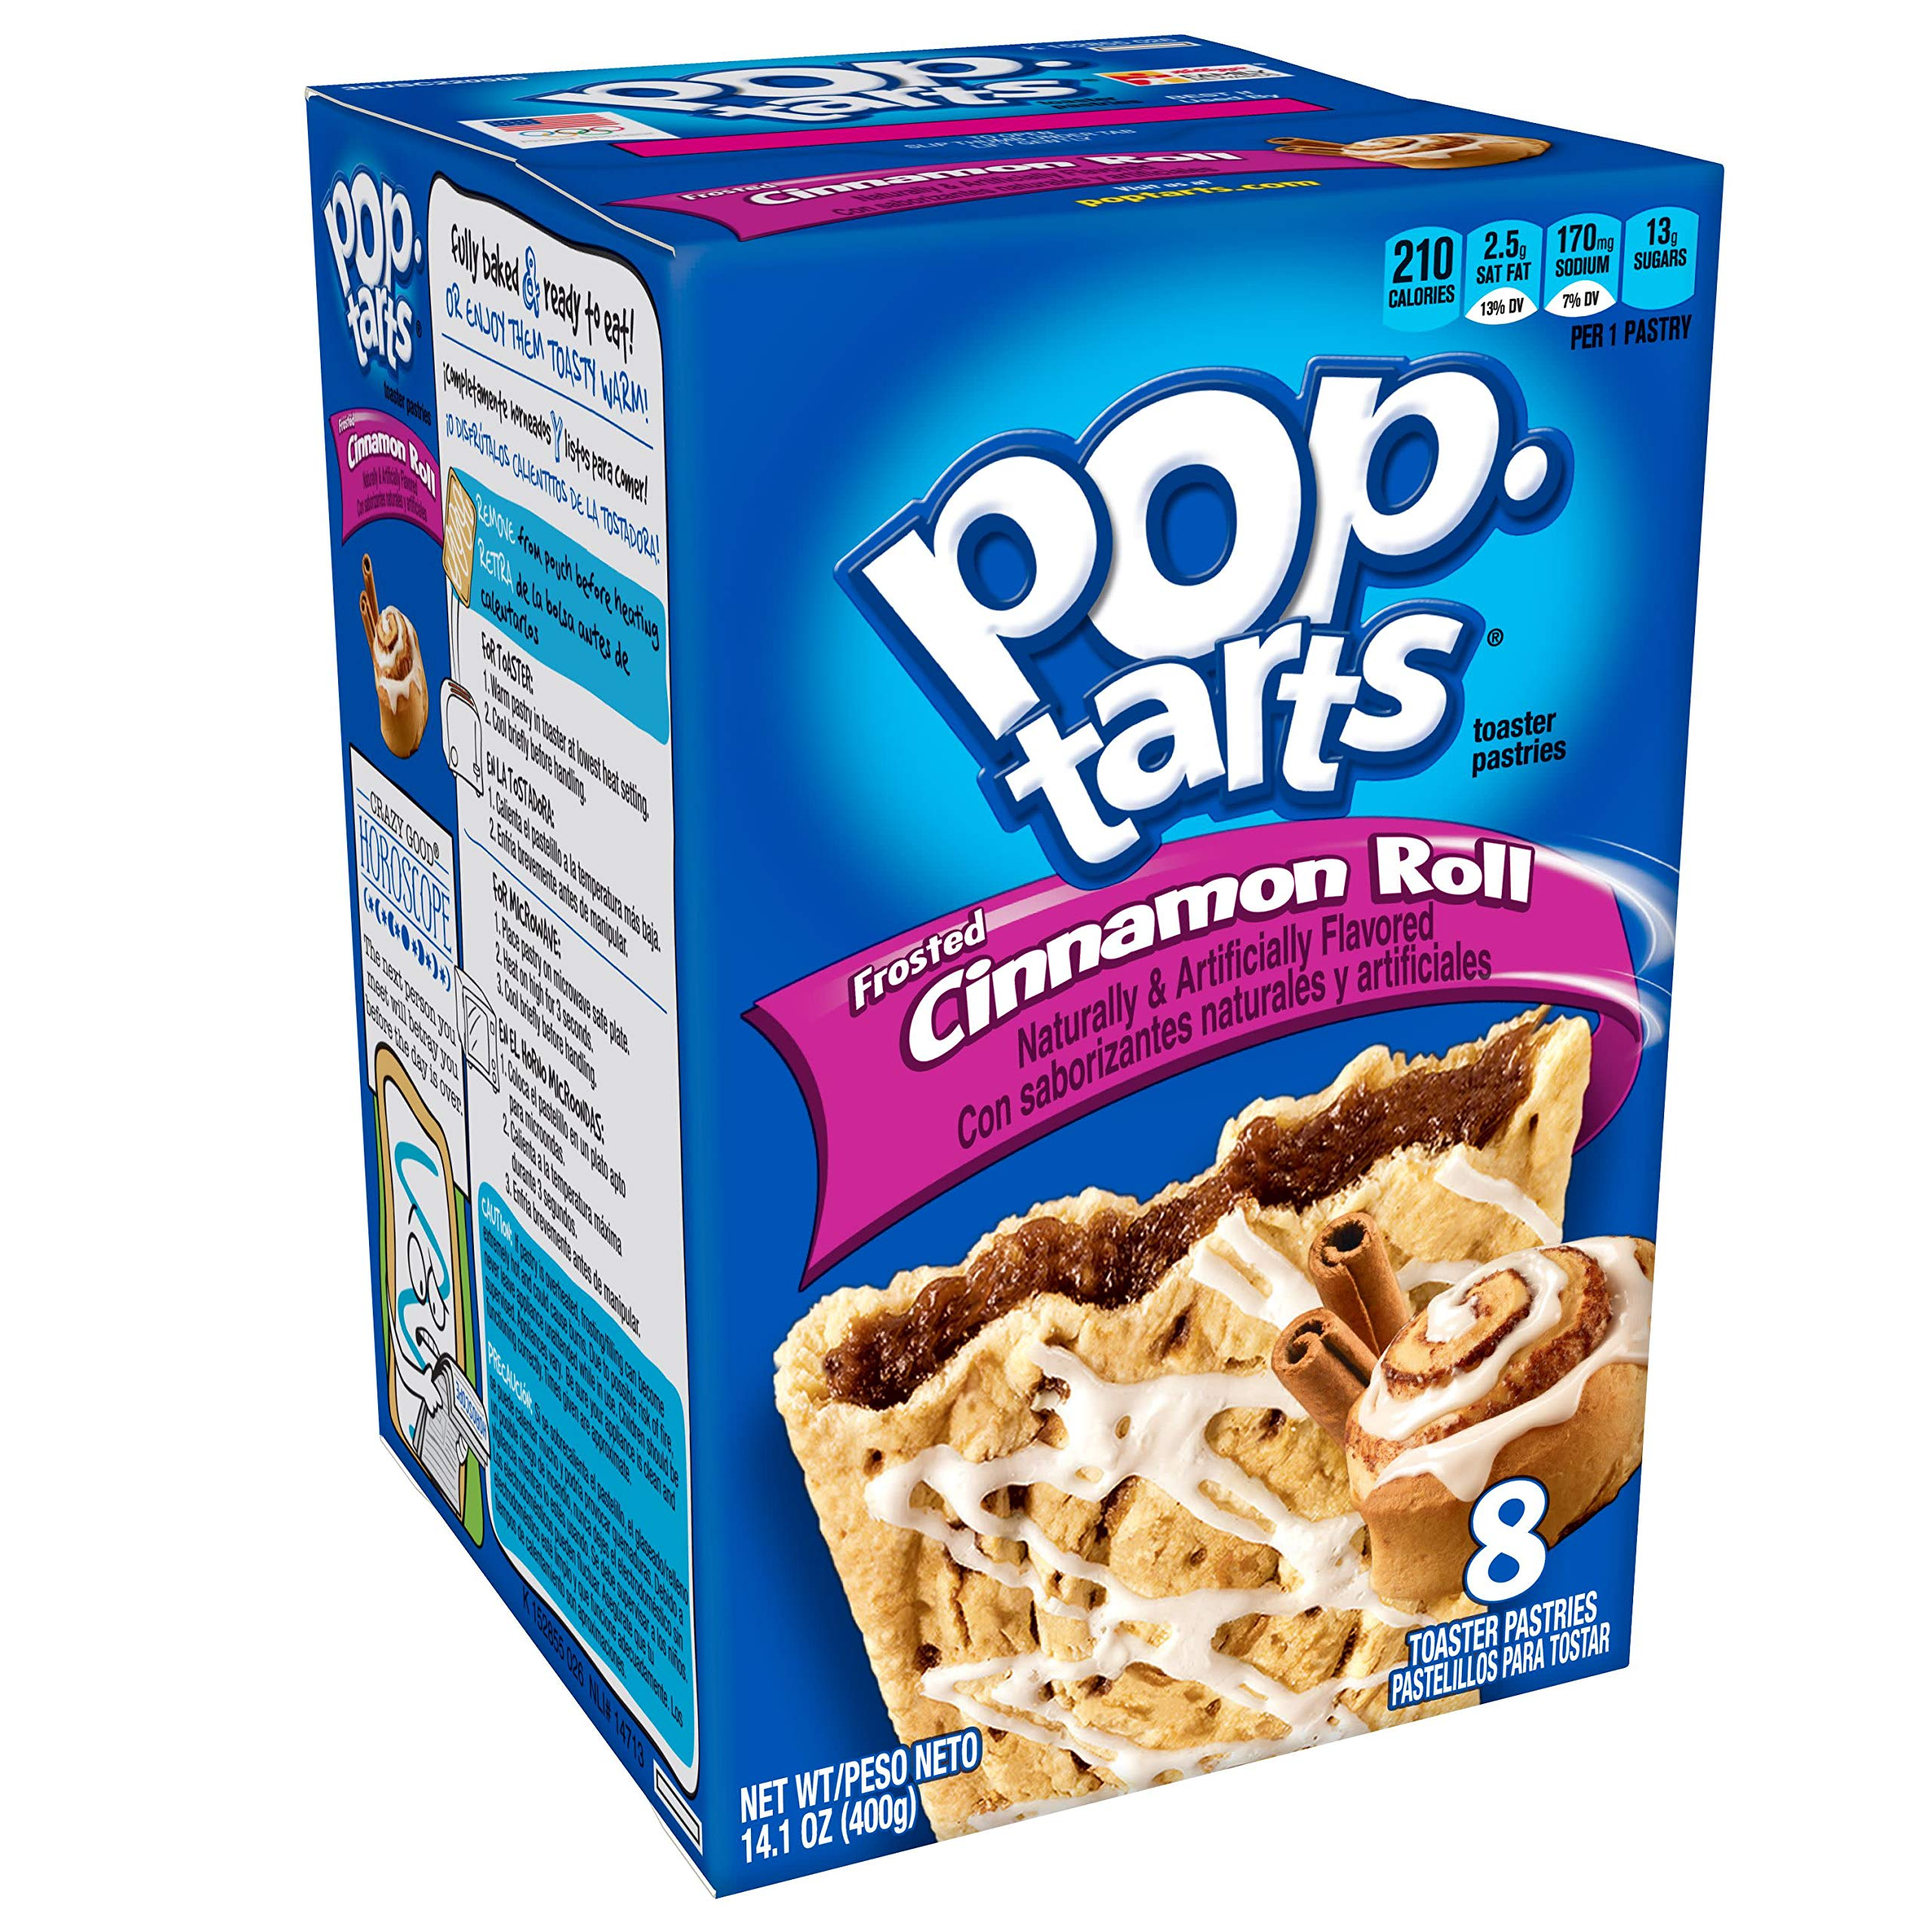 Pop-Tarts Breakfast Toaster Pastries, Frosted Cinnamon Roll Flavored, 14.1 oz (8 Count)(Pack of 12) by Pop-Tarts